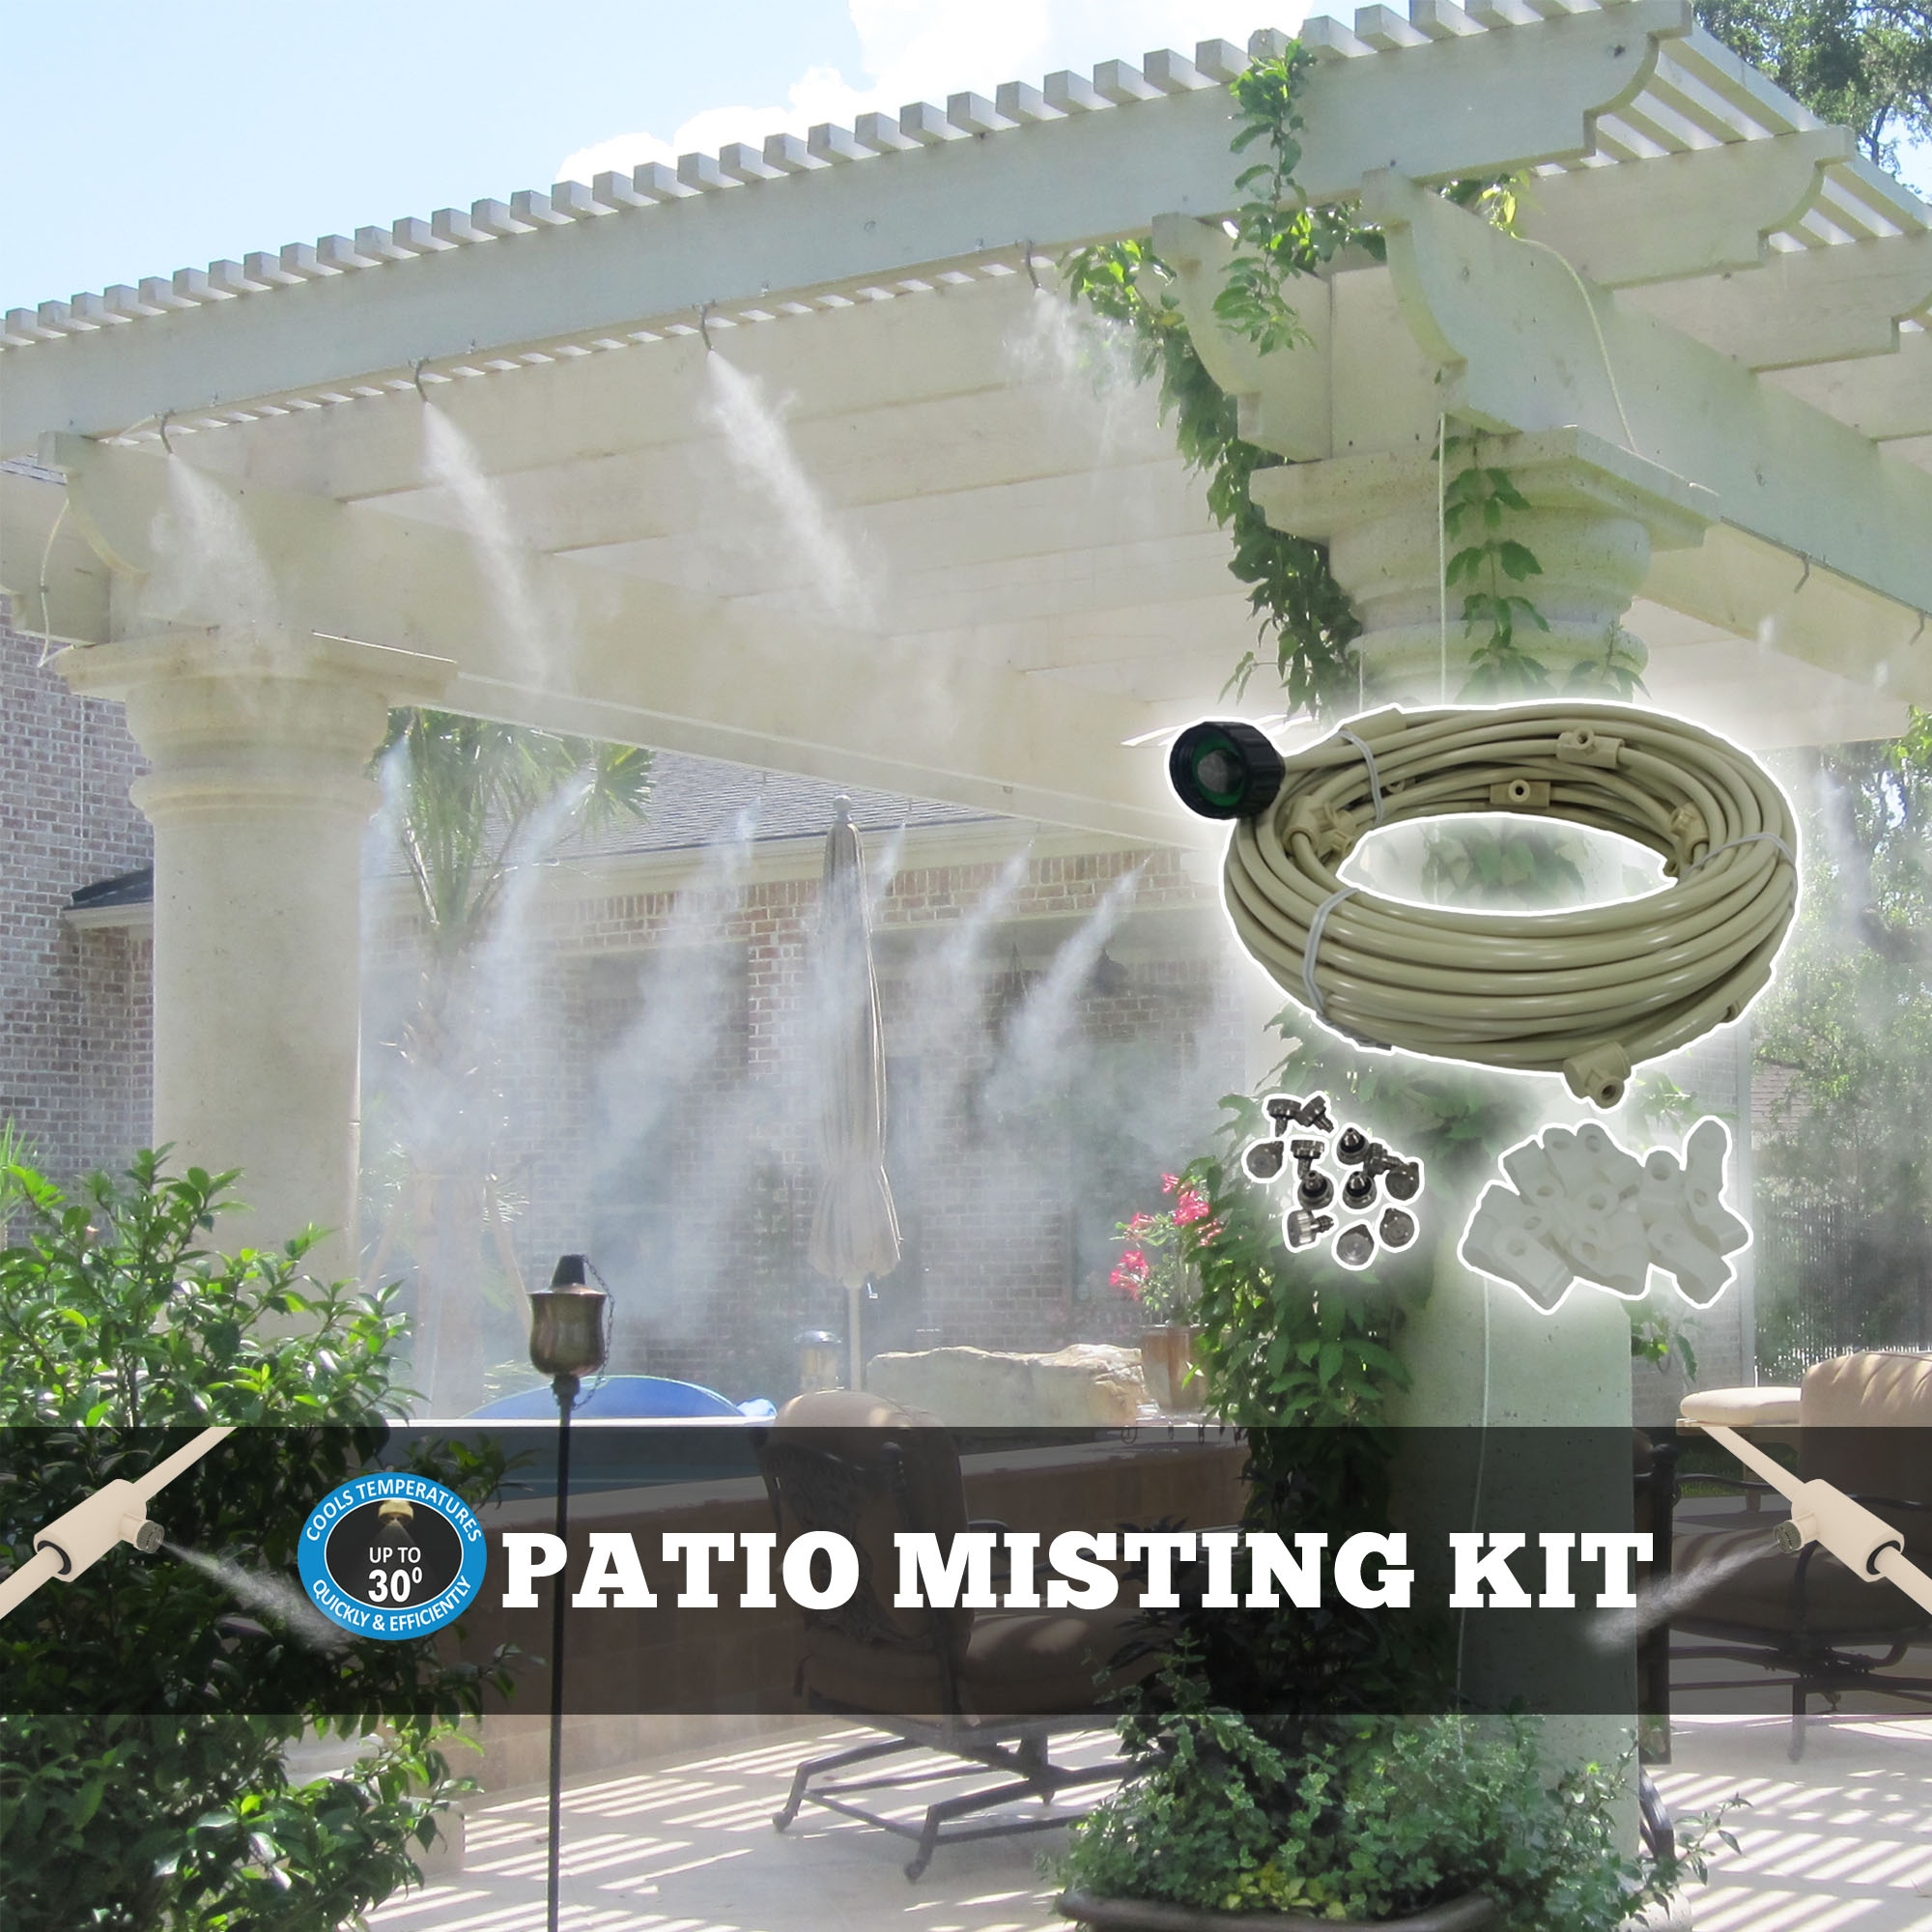 Misting system for outdoor cooling. by Supplier Generic